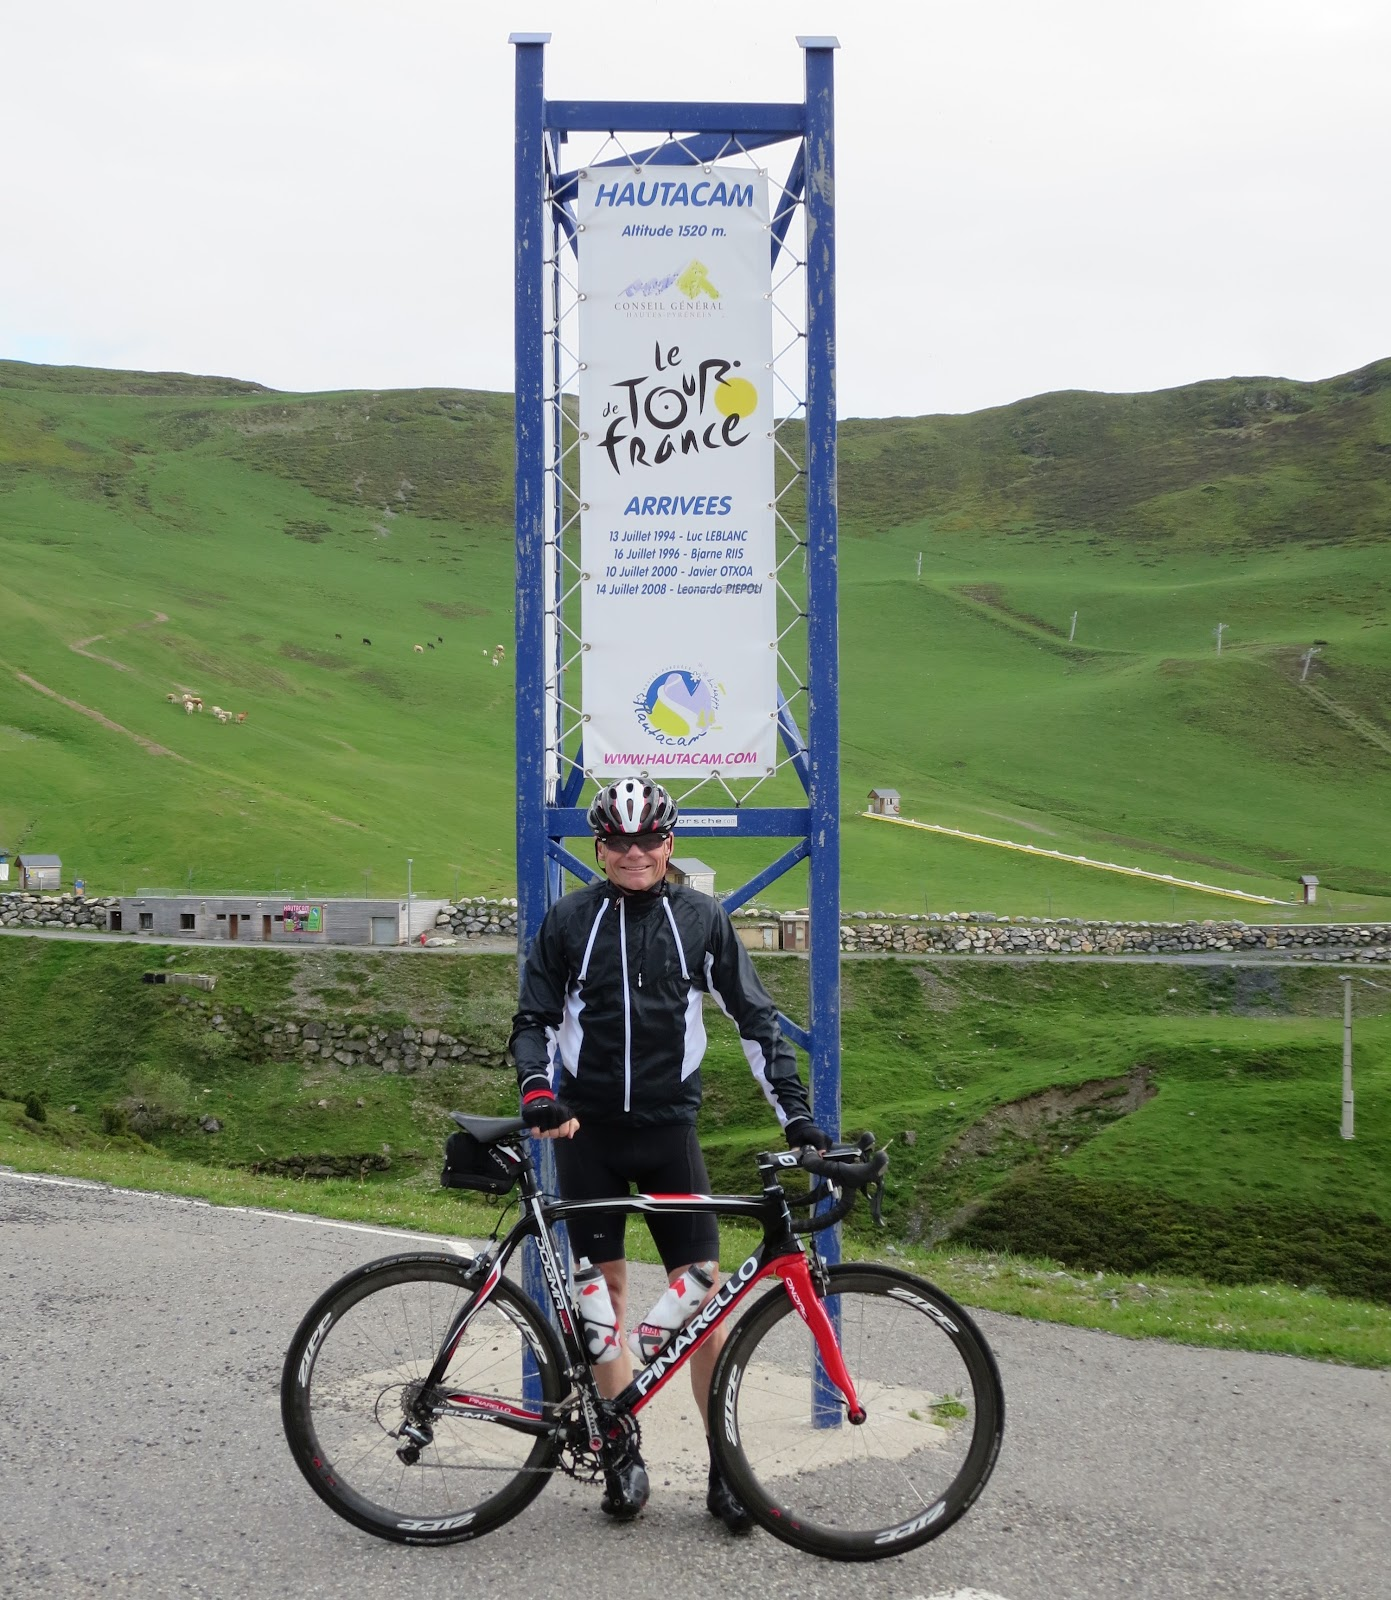 John Johnson with bike on Hautacam - Tour de France sign